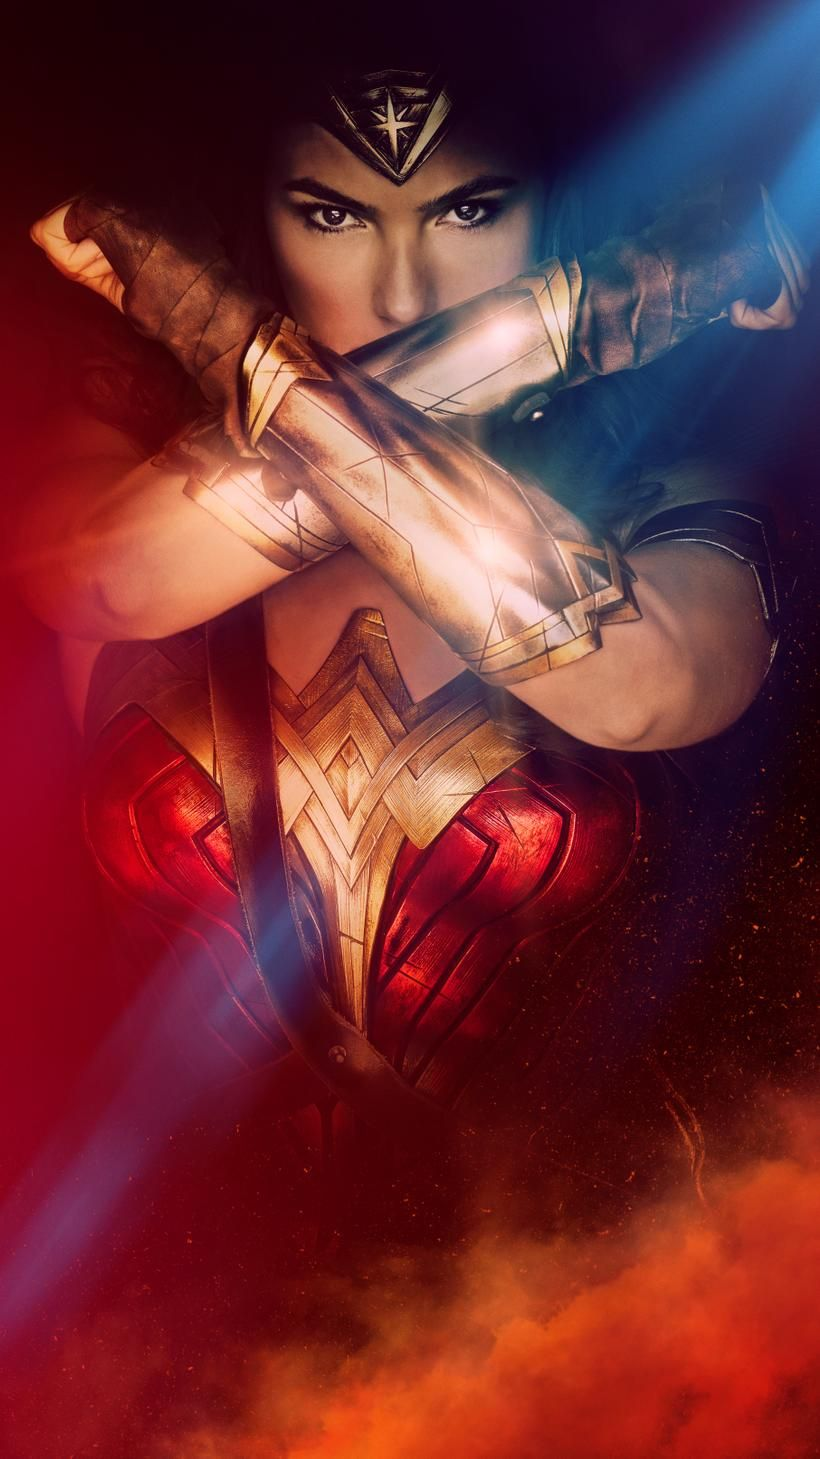 Wonder Woman 2017 Phone Wallpaper Moviemania Wonder Woman Drawing Wonder Woman Movie Wonder Woman Gifts